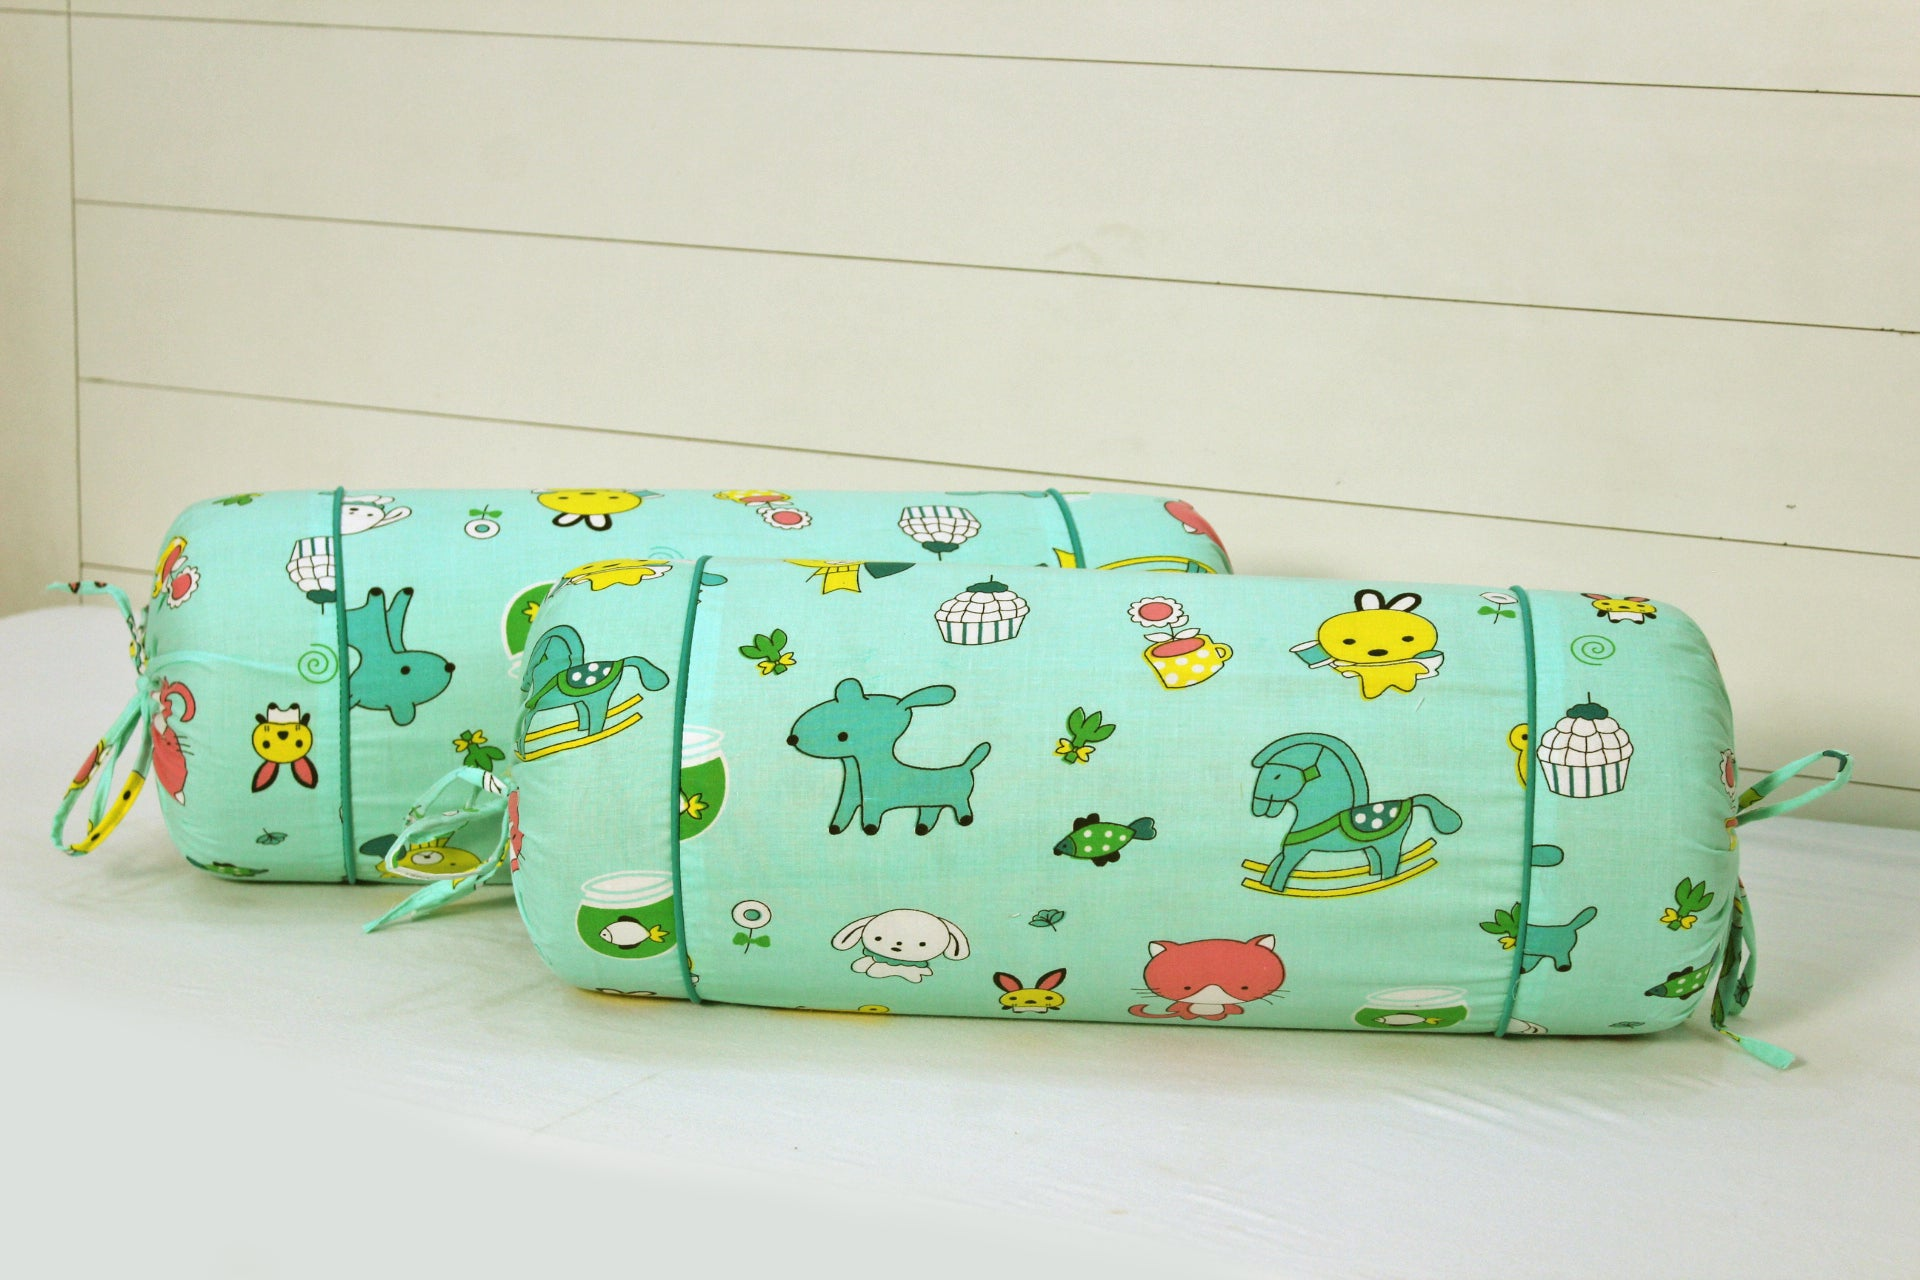 AURAVE Multicolor Funky Cotton 2 Pcs Bolster Covers, Green